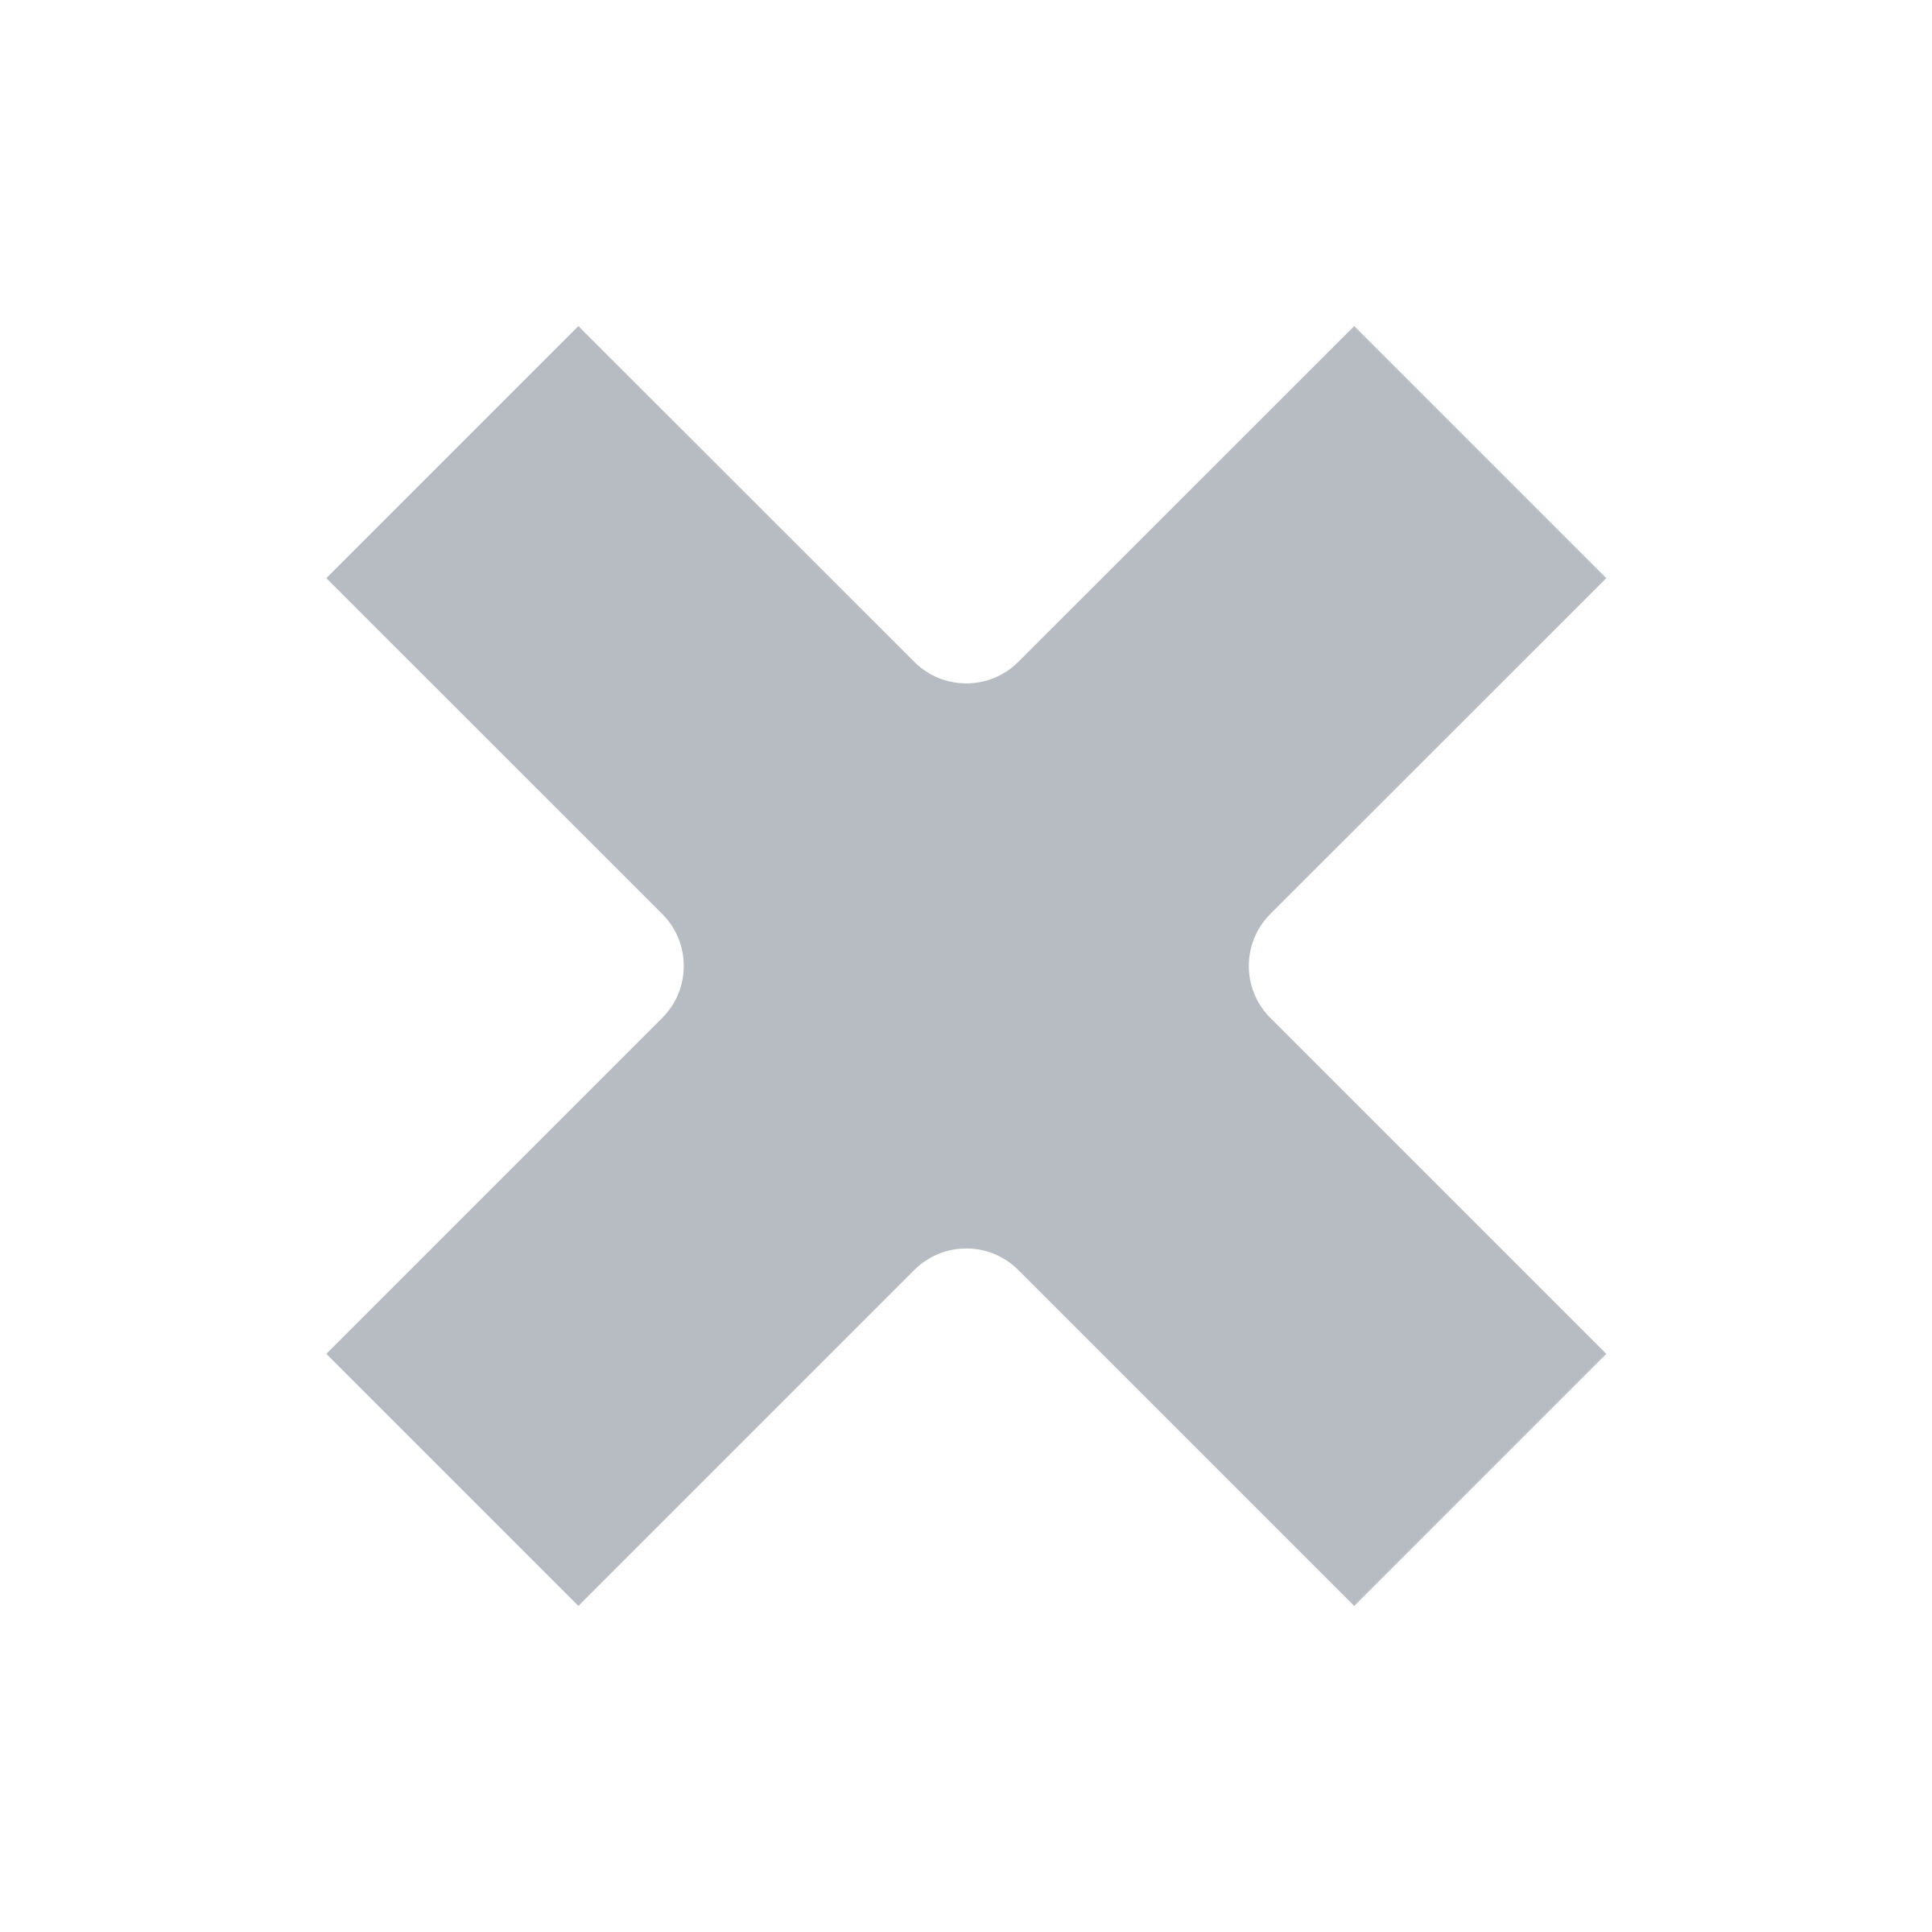 Cross icon by ZaWertun